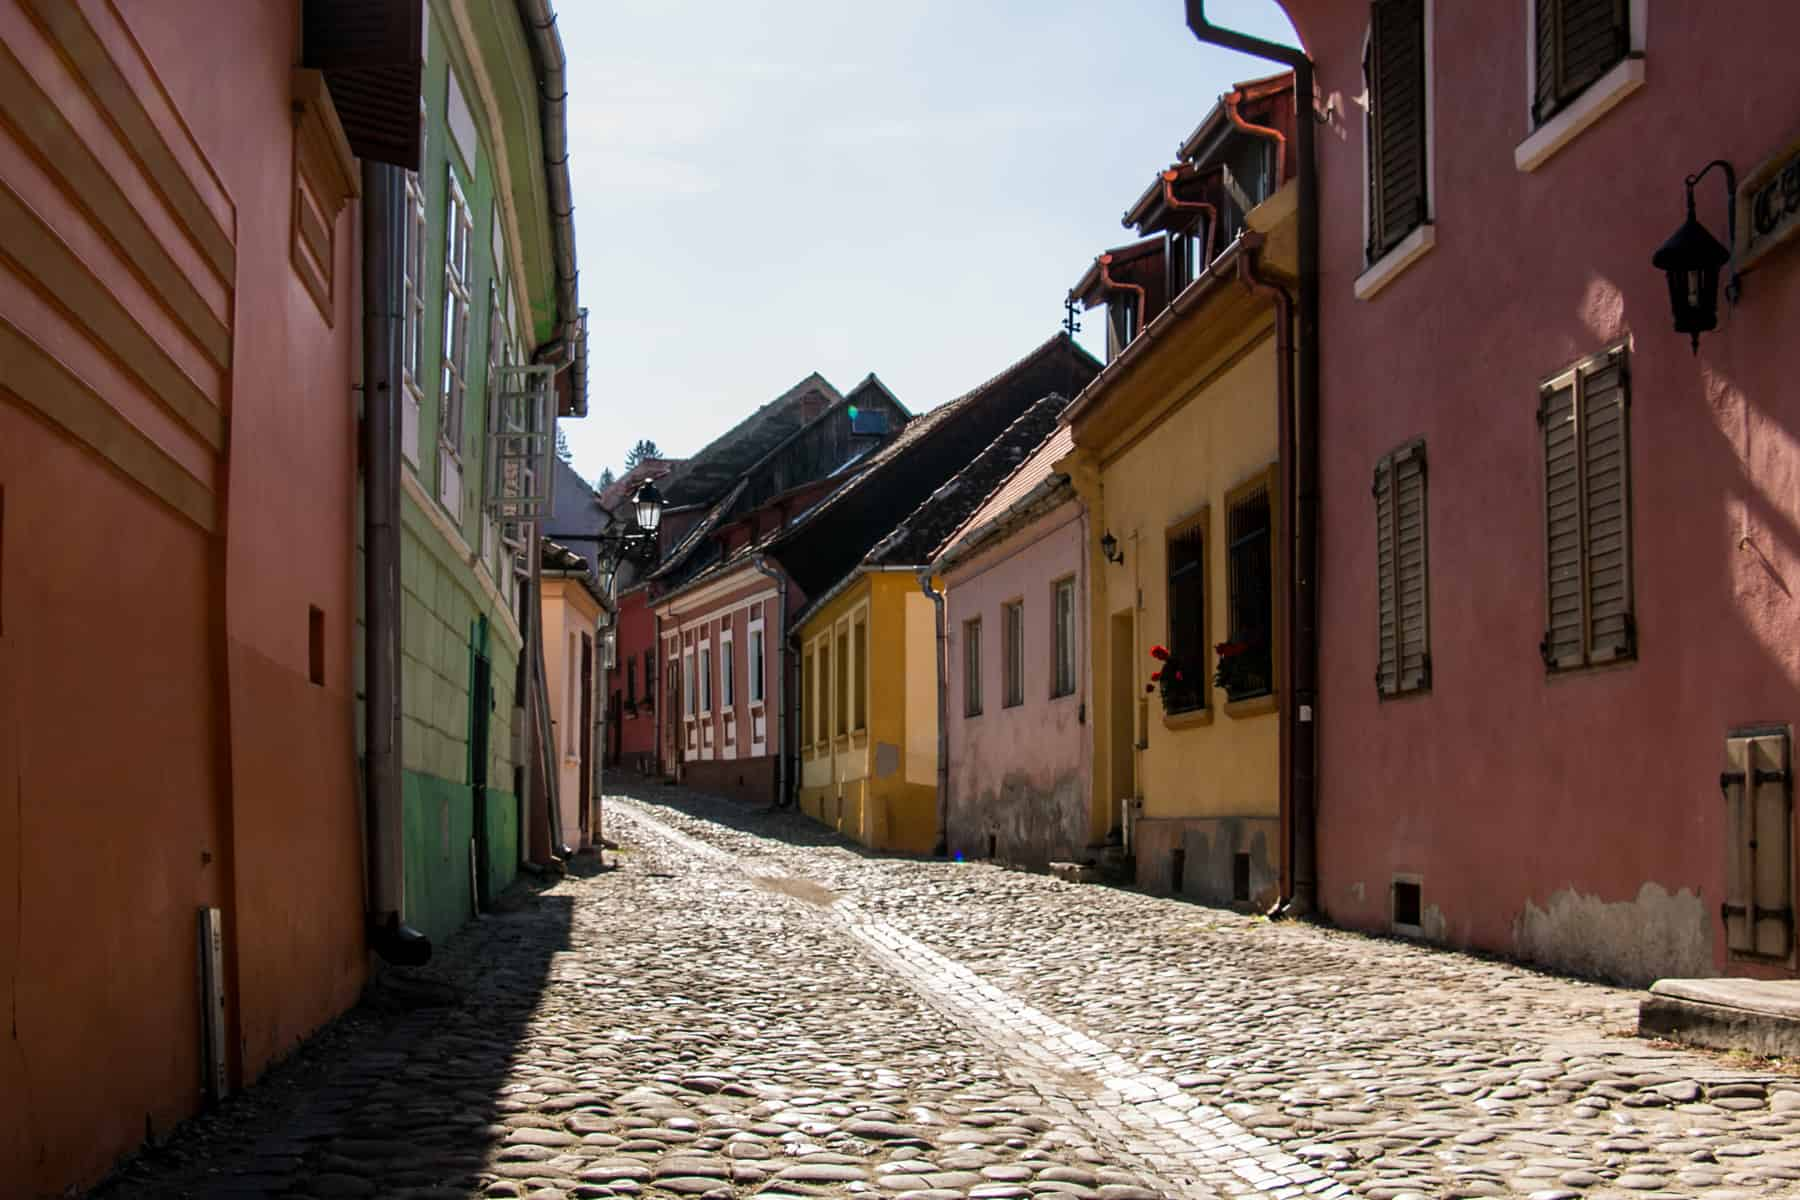 Colourful houses line a cobblestone street in Sighisoara Romania